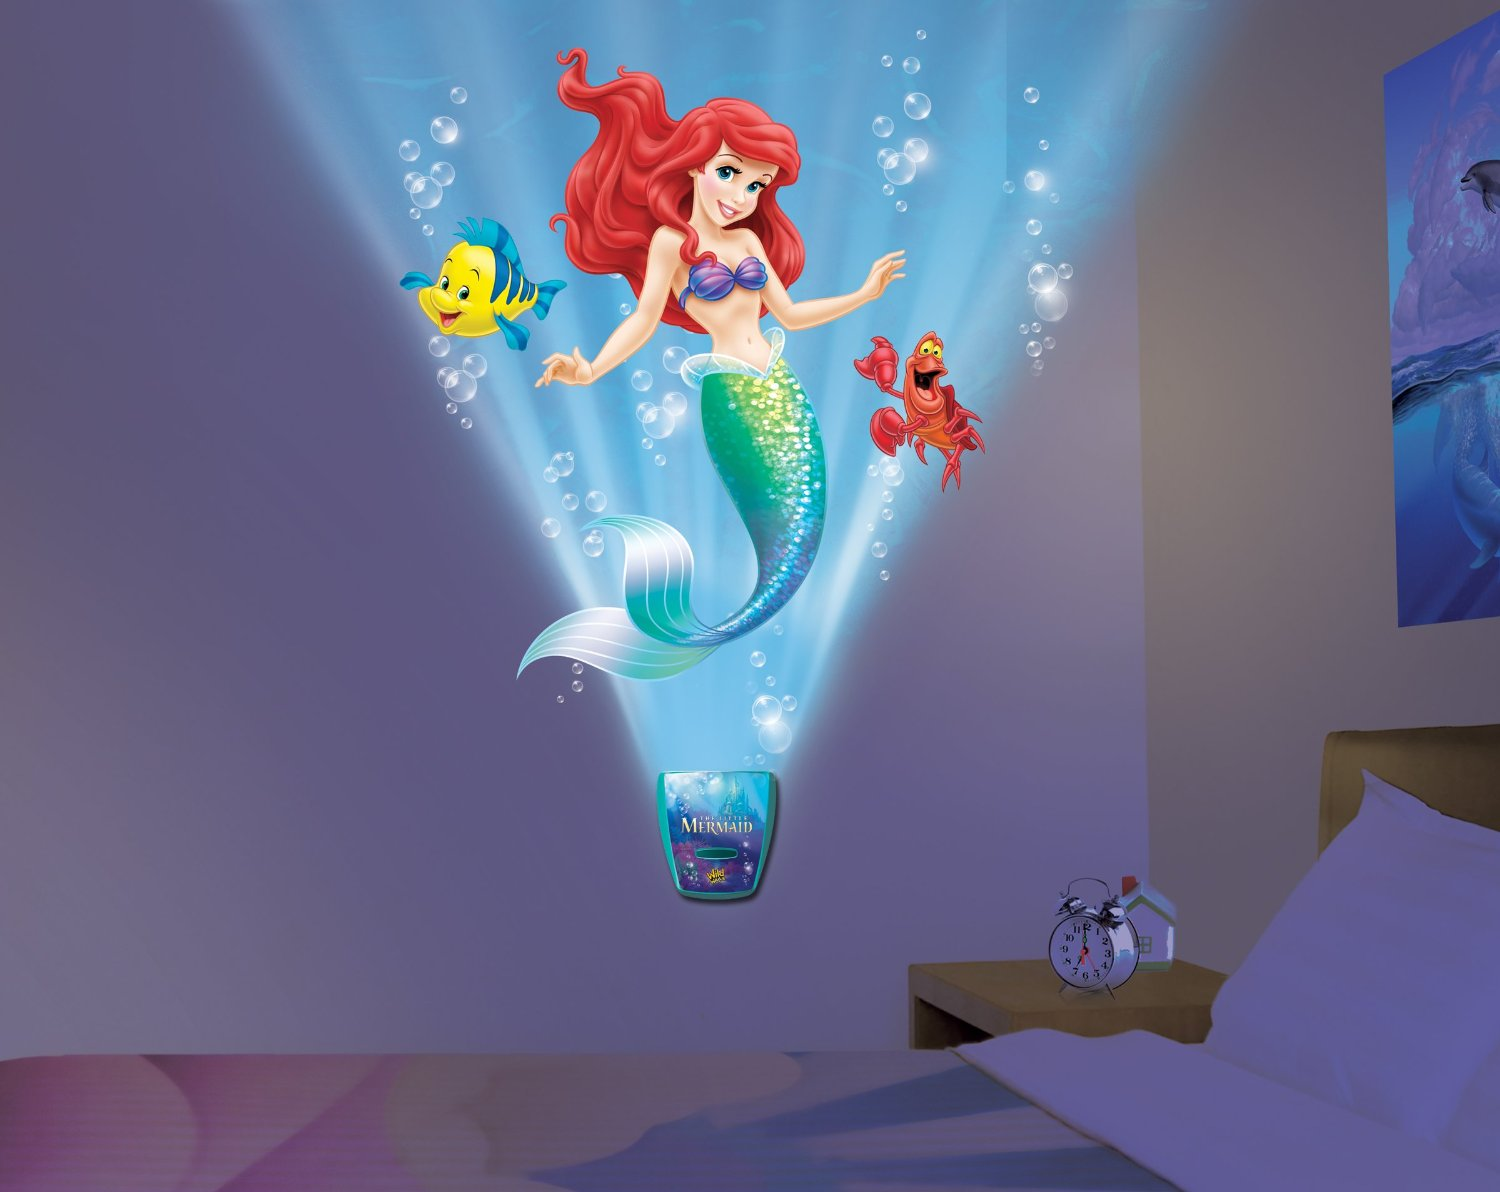 Childrens Wall Night Lights Uncle Milton Wild Walls Little Mermaid Light And Sound